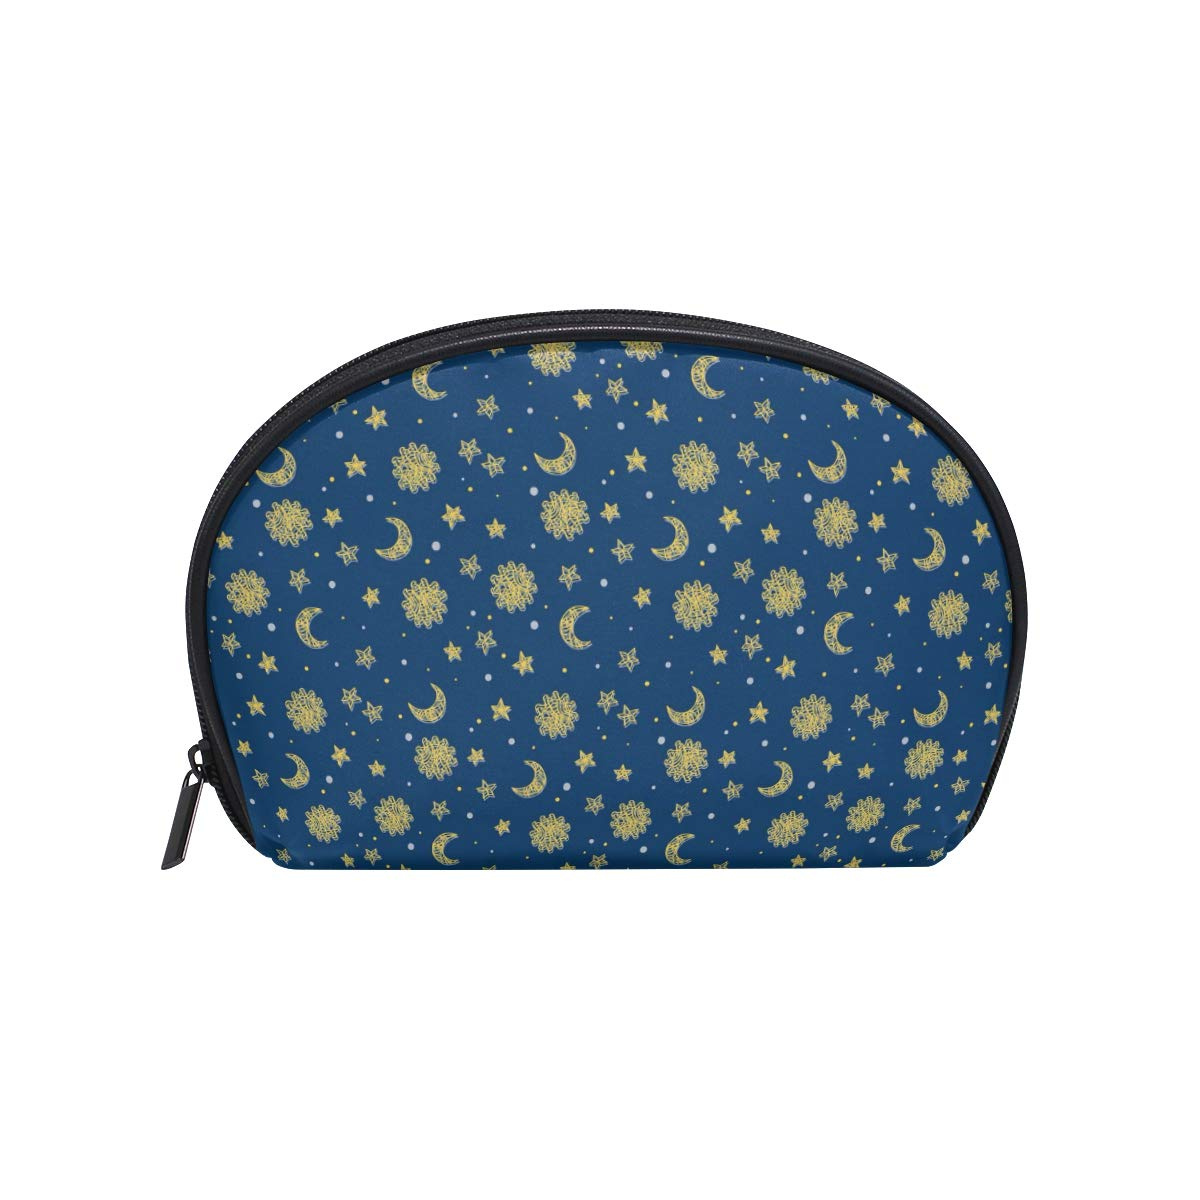 e1be4d9e595d COOSUN Sun Moon And Stars Cosmetic Pouch Clutch Makeup Bag Travel Organiser  Case Toiletry Pouch for Women